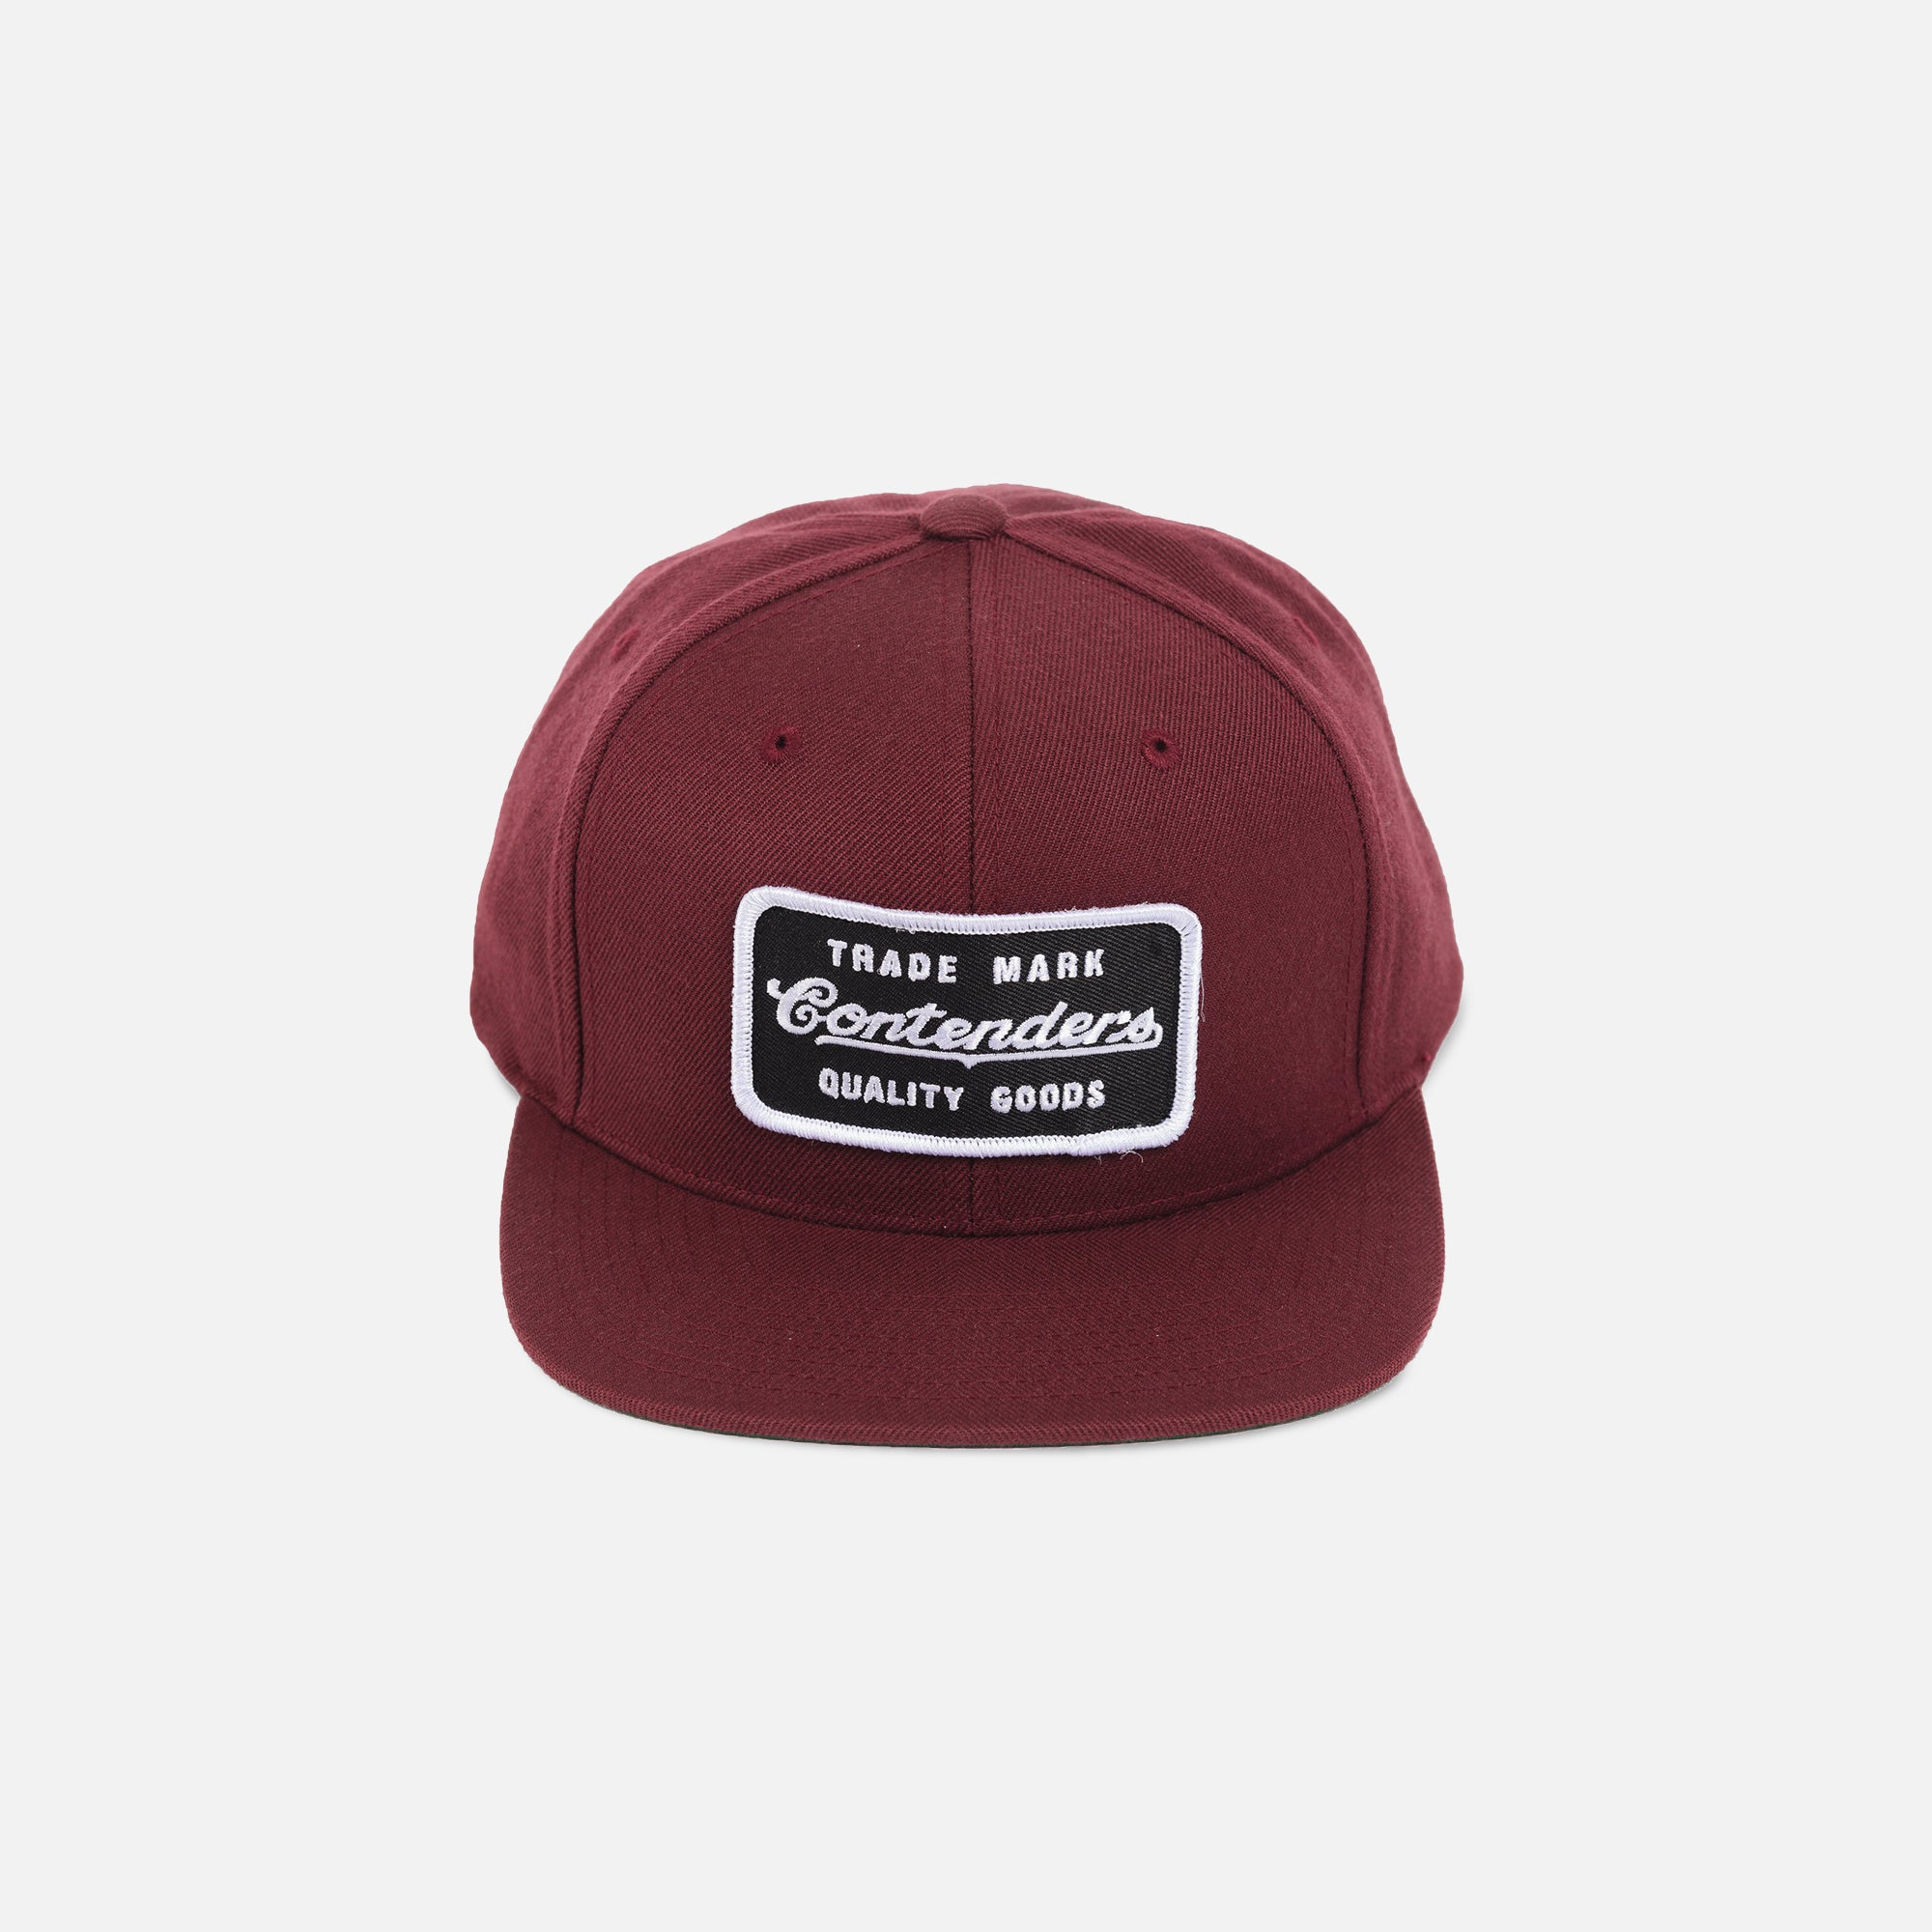 QUALITY GOOD SNAPBACK - Contenders Clothing